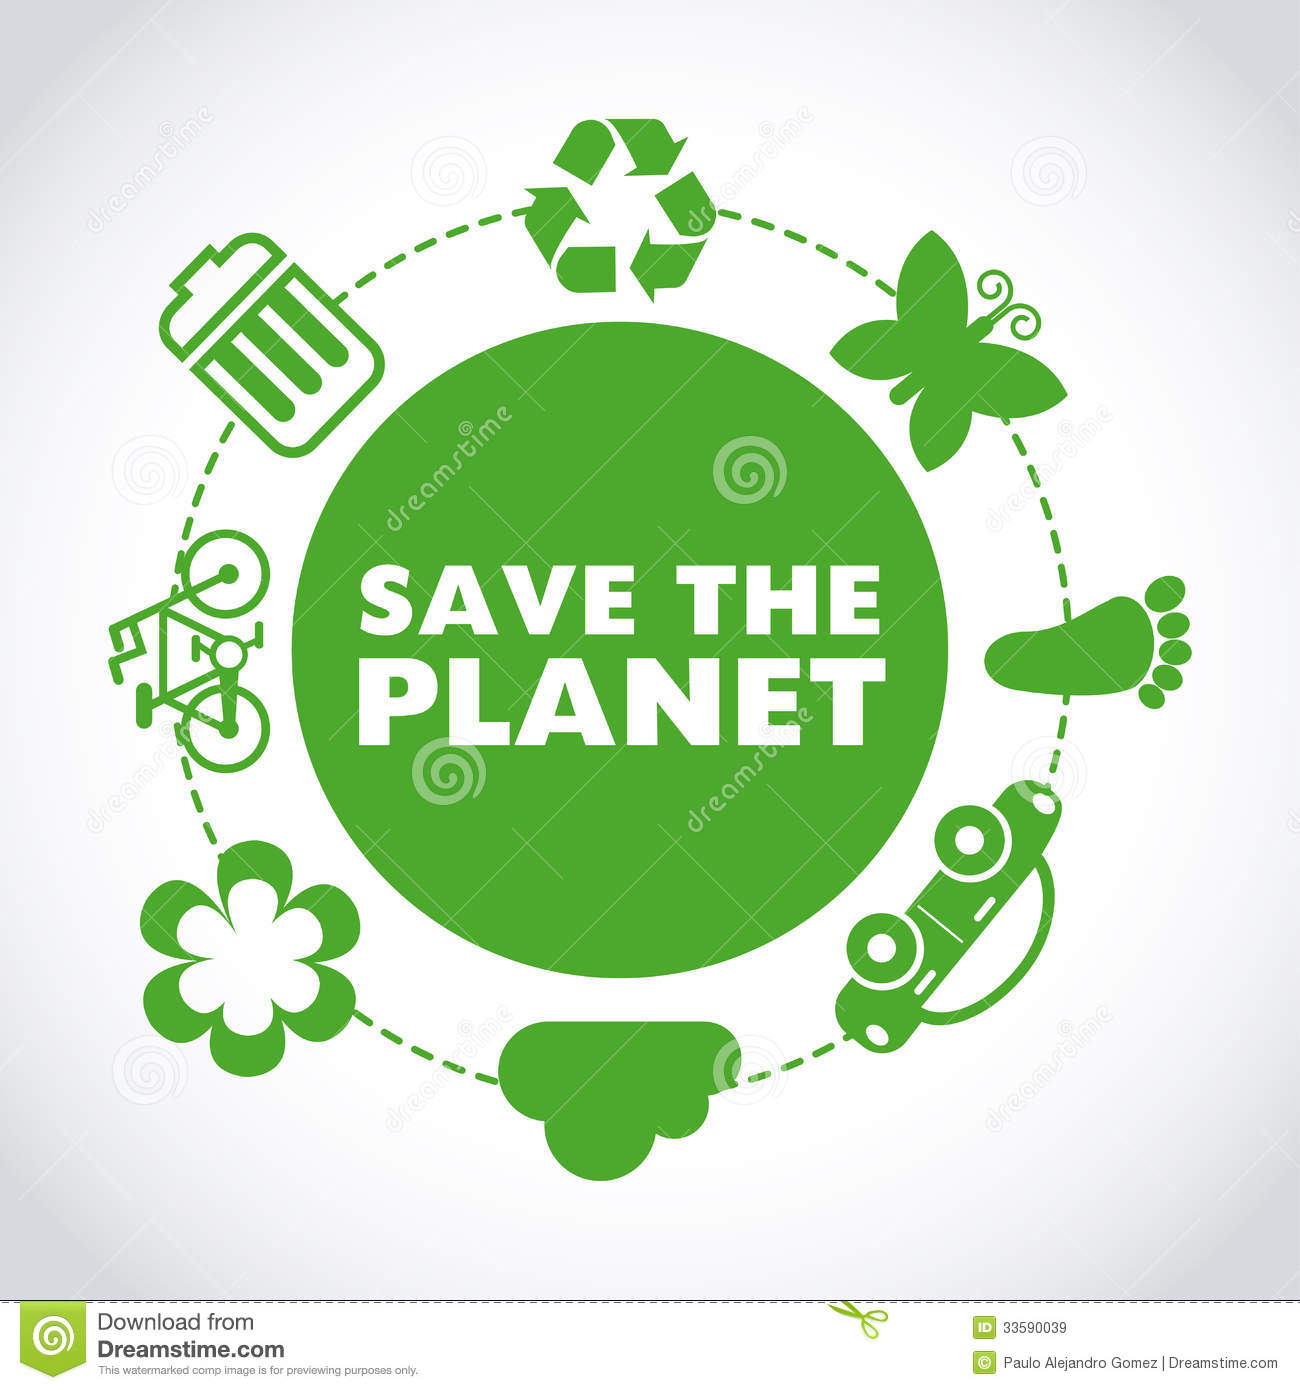 Save The Planet Royalty Free Stock Images - Image: 33590039: www.dreamstime.com/royalty-free-stock-images-save-planet-design...